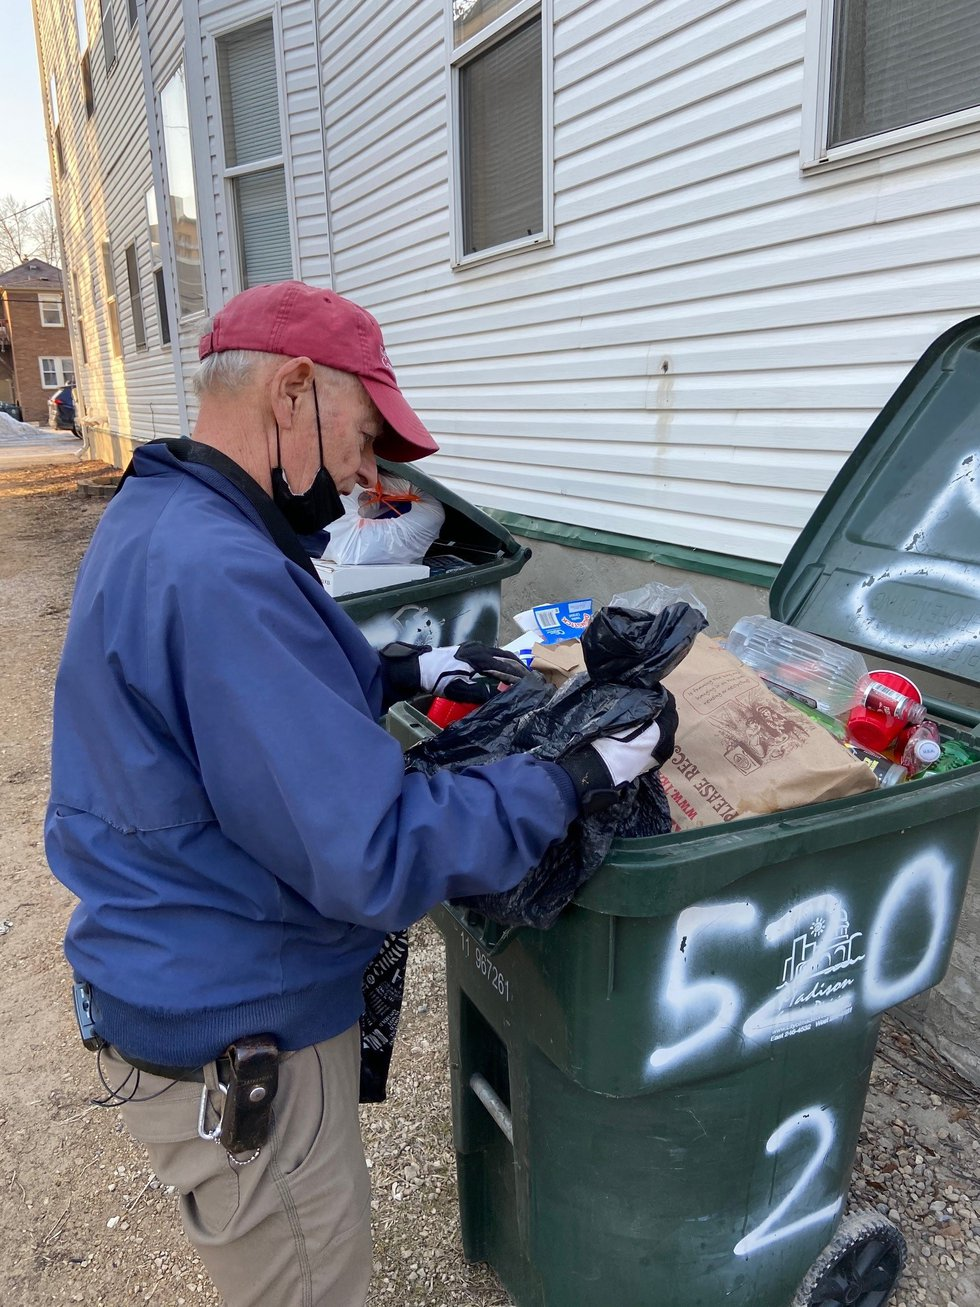 Gary Gates removes garbage from a recycle bin